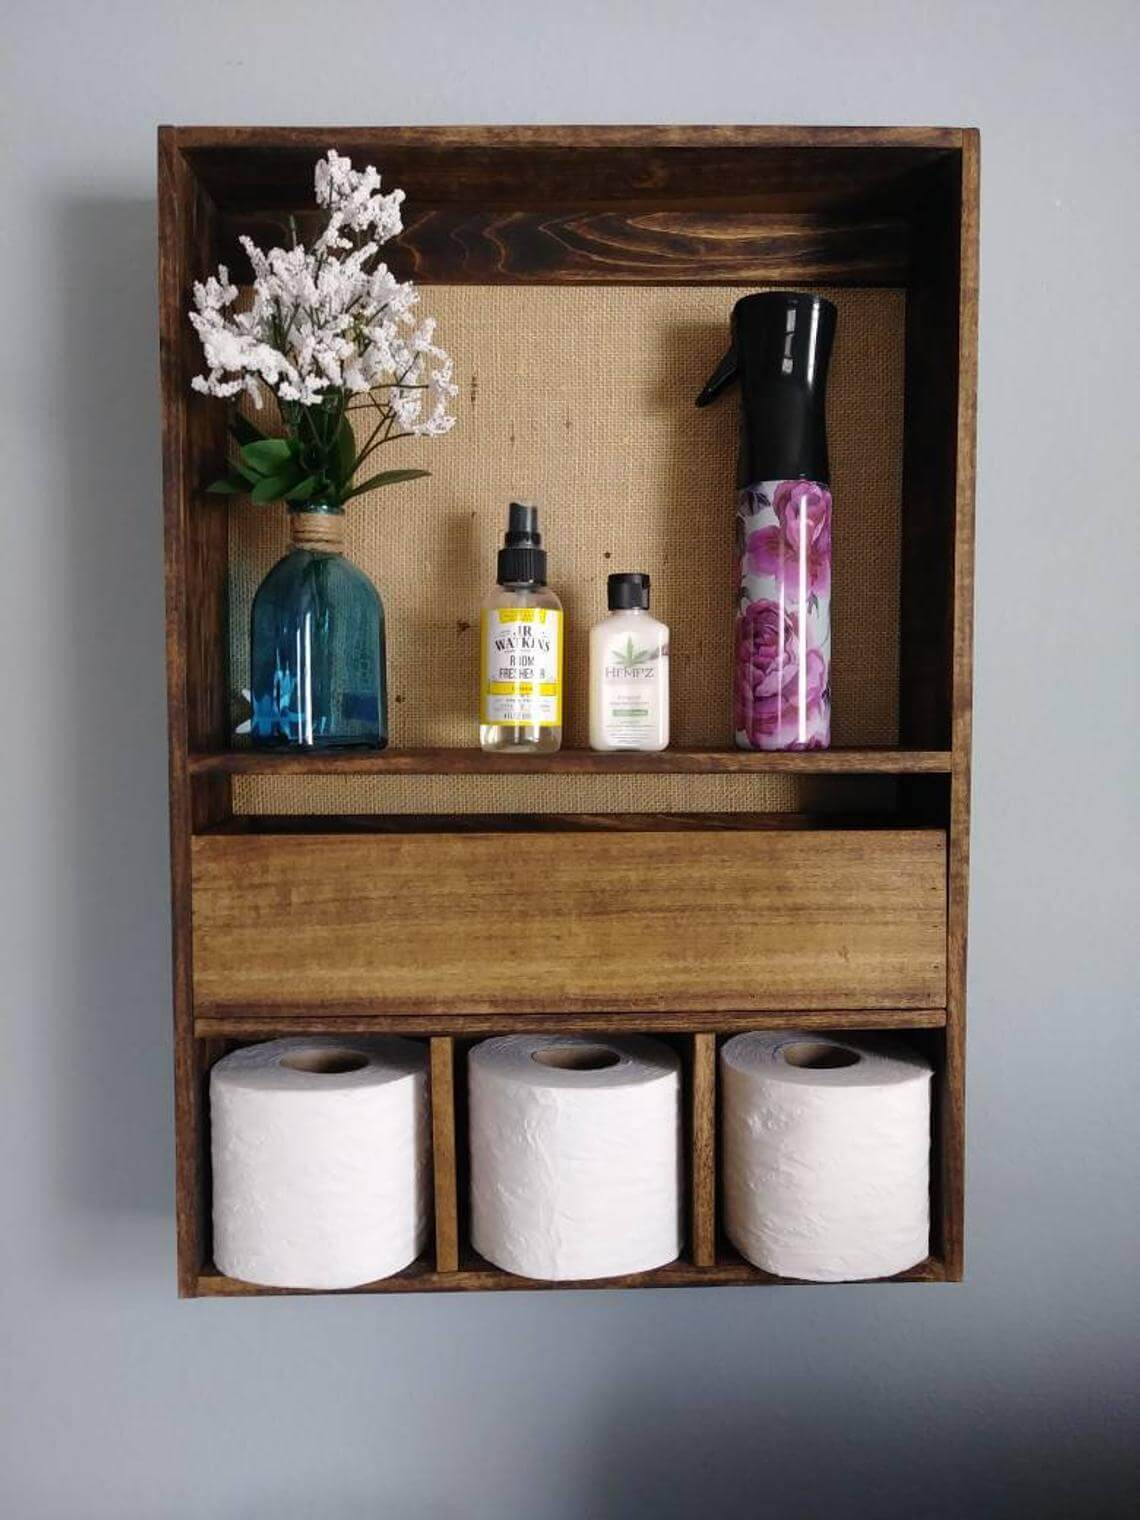 Shelving Unit With Toilet Paper Cubbies